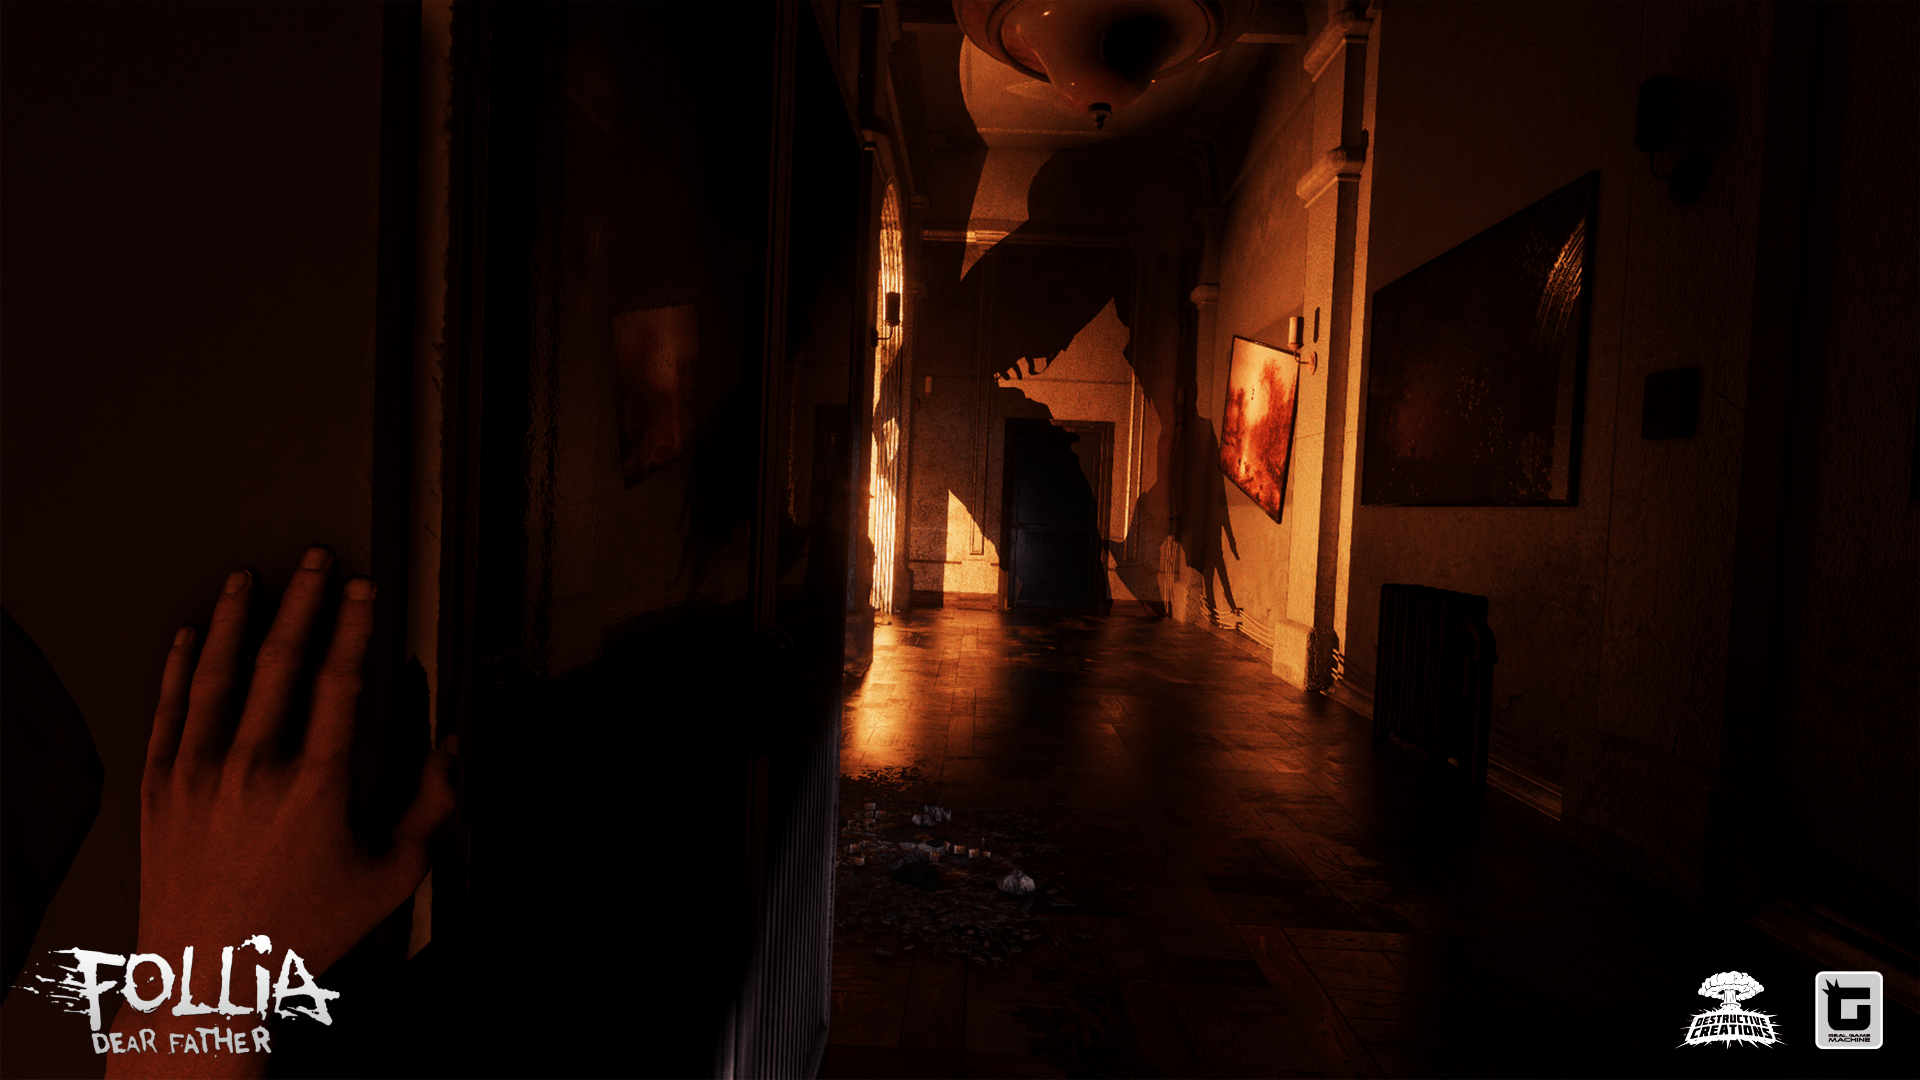 Follia: Dear Father Brings Visceral Horror to VR